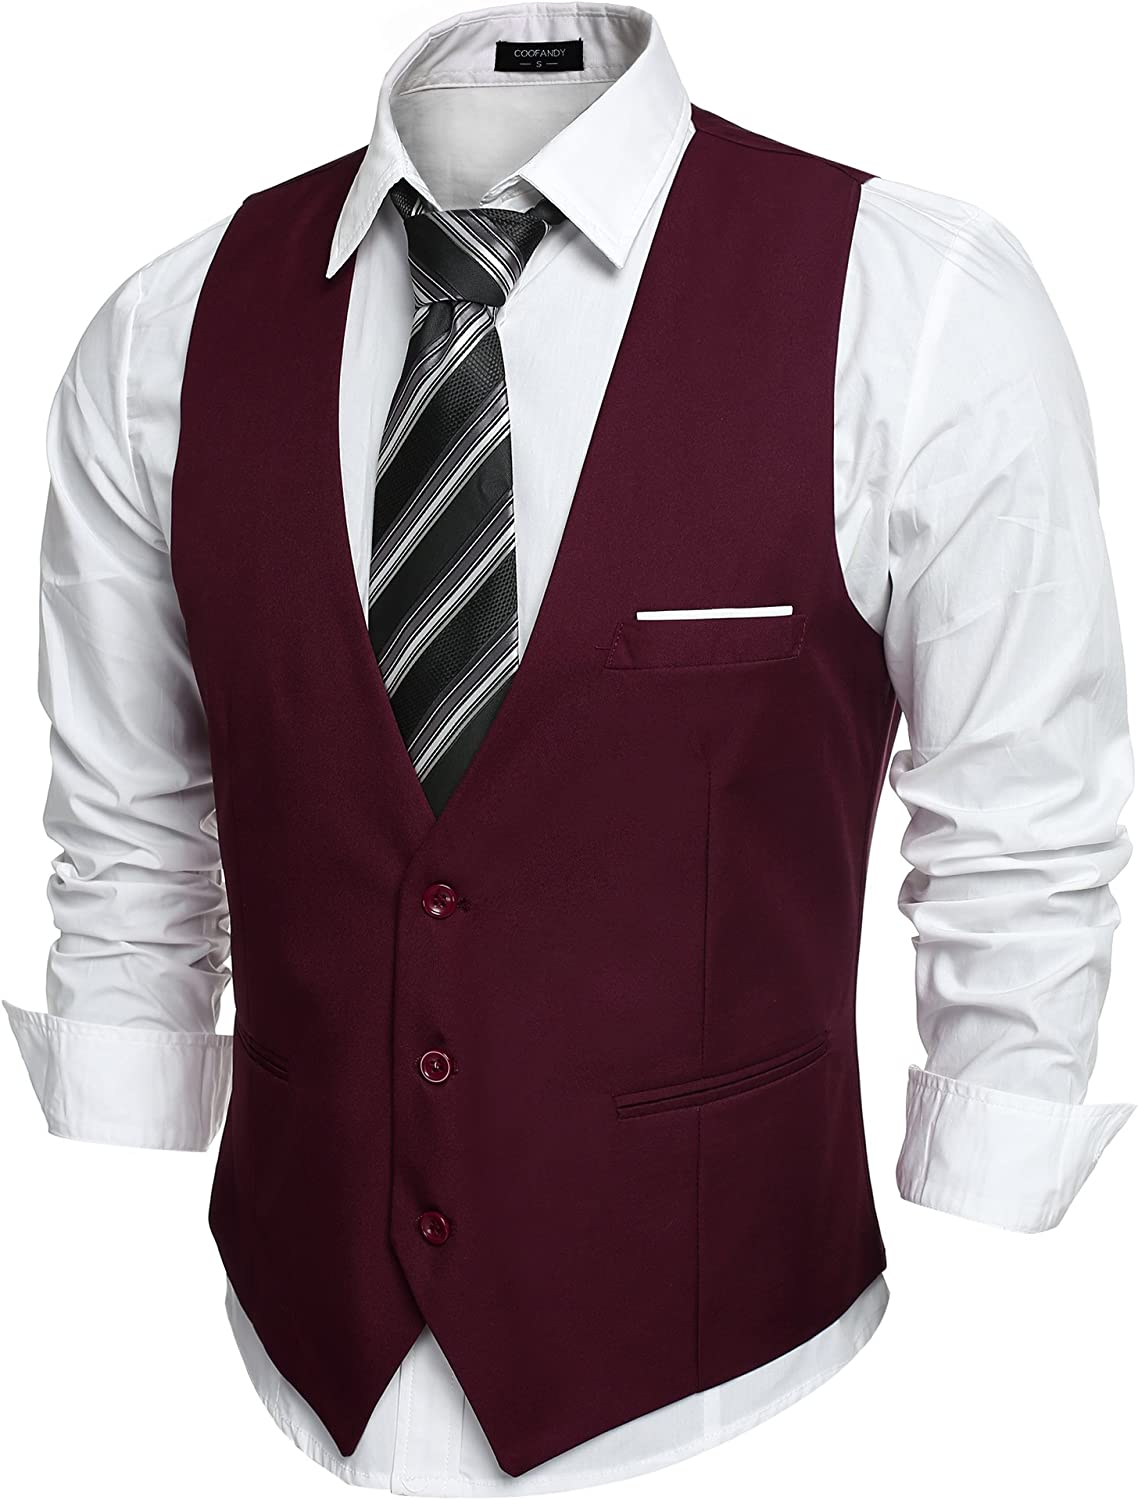 COOFANDY Men's V-Neck Sleeveless Slim Fit Jacket Casual Suit Vests at  Men's Clothing store